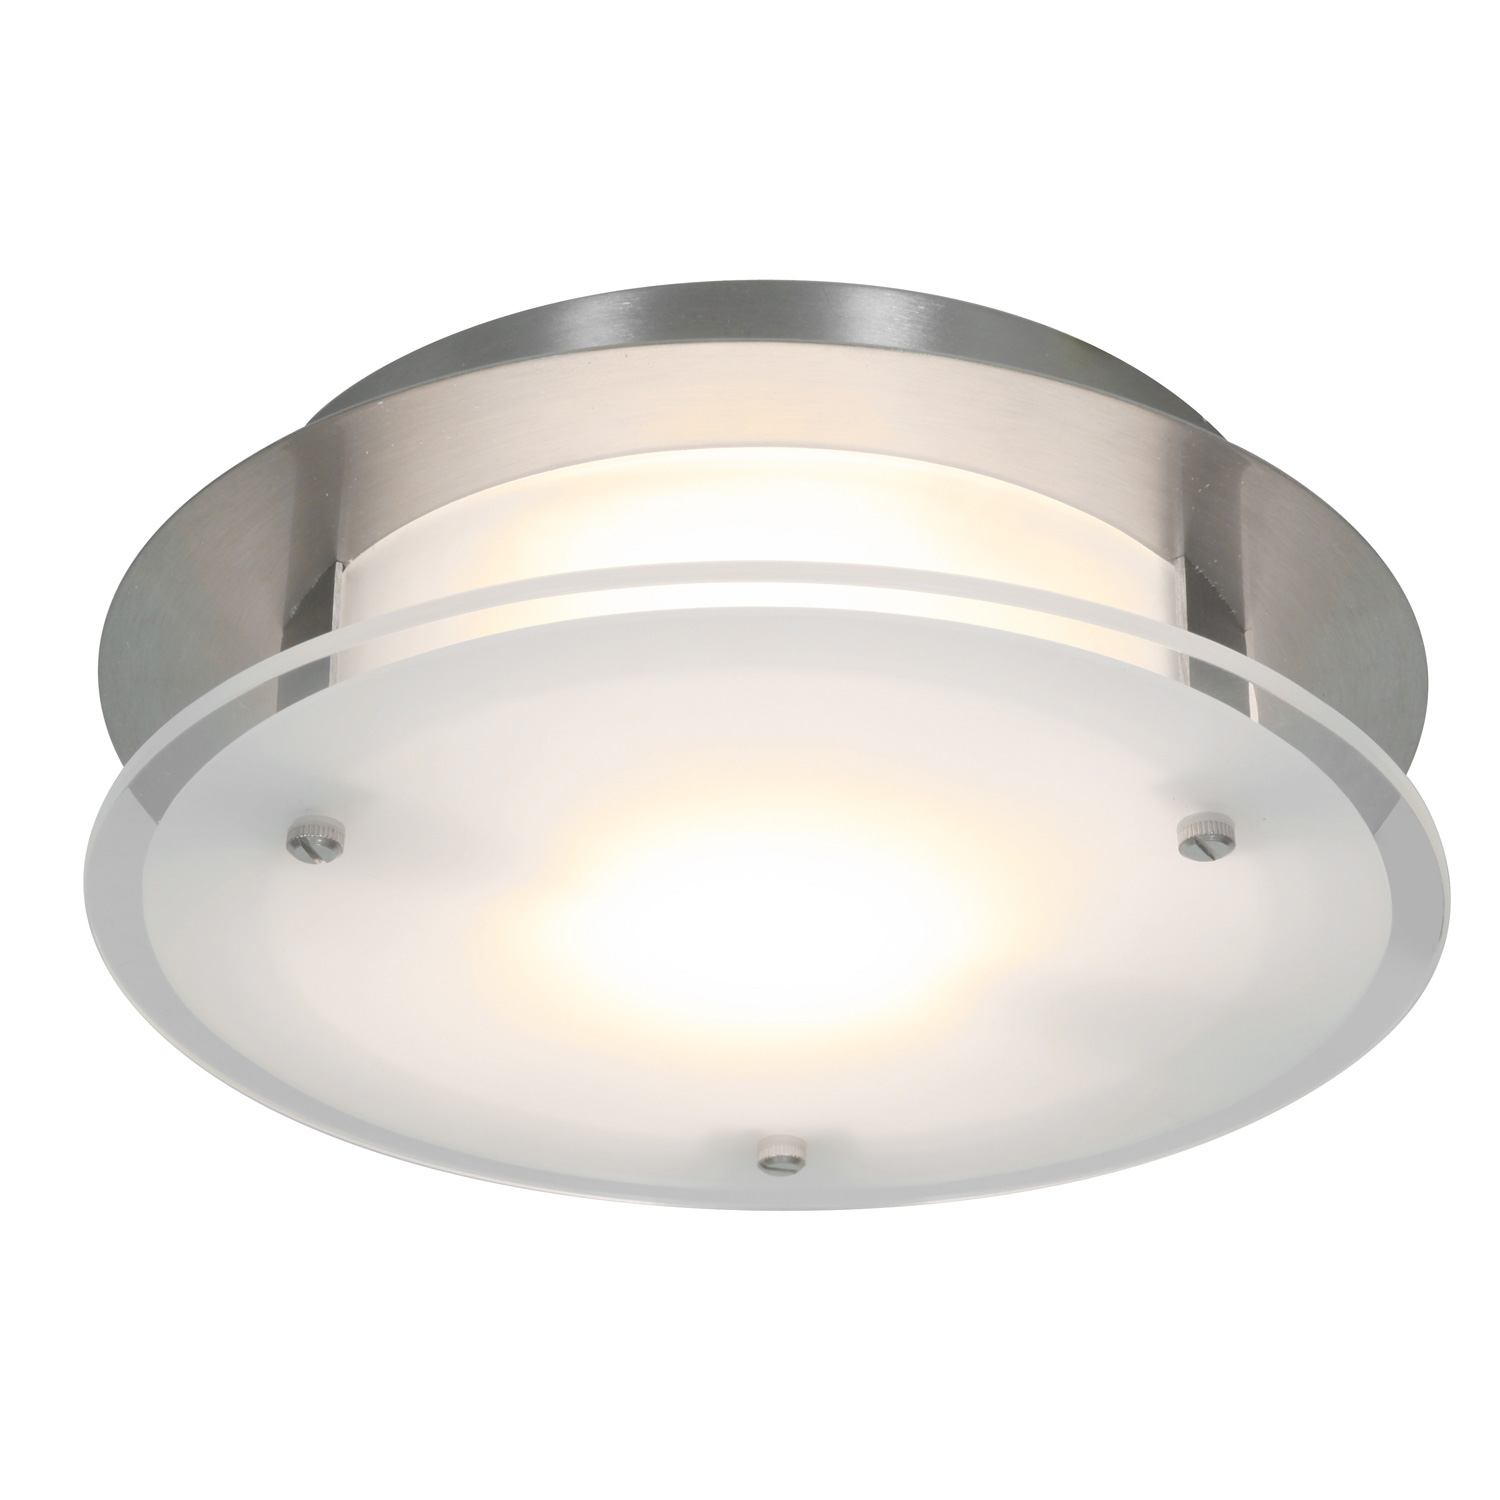 Kitchen Ceiling Fans With Bright Lights Round Ceiling Light Soul Speak Designs